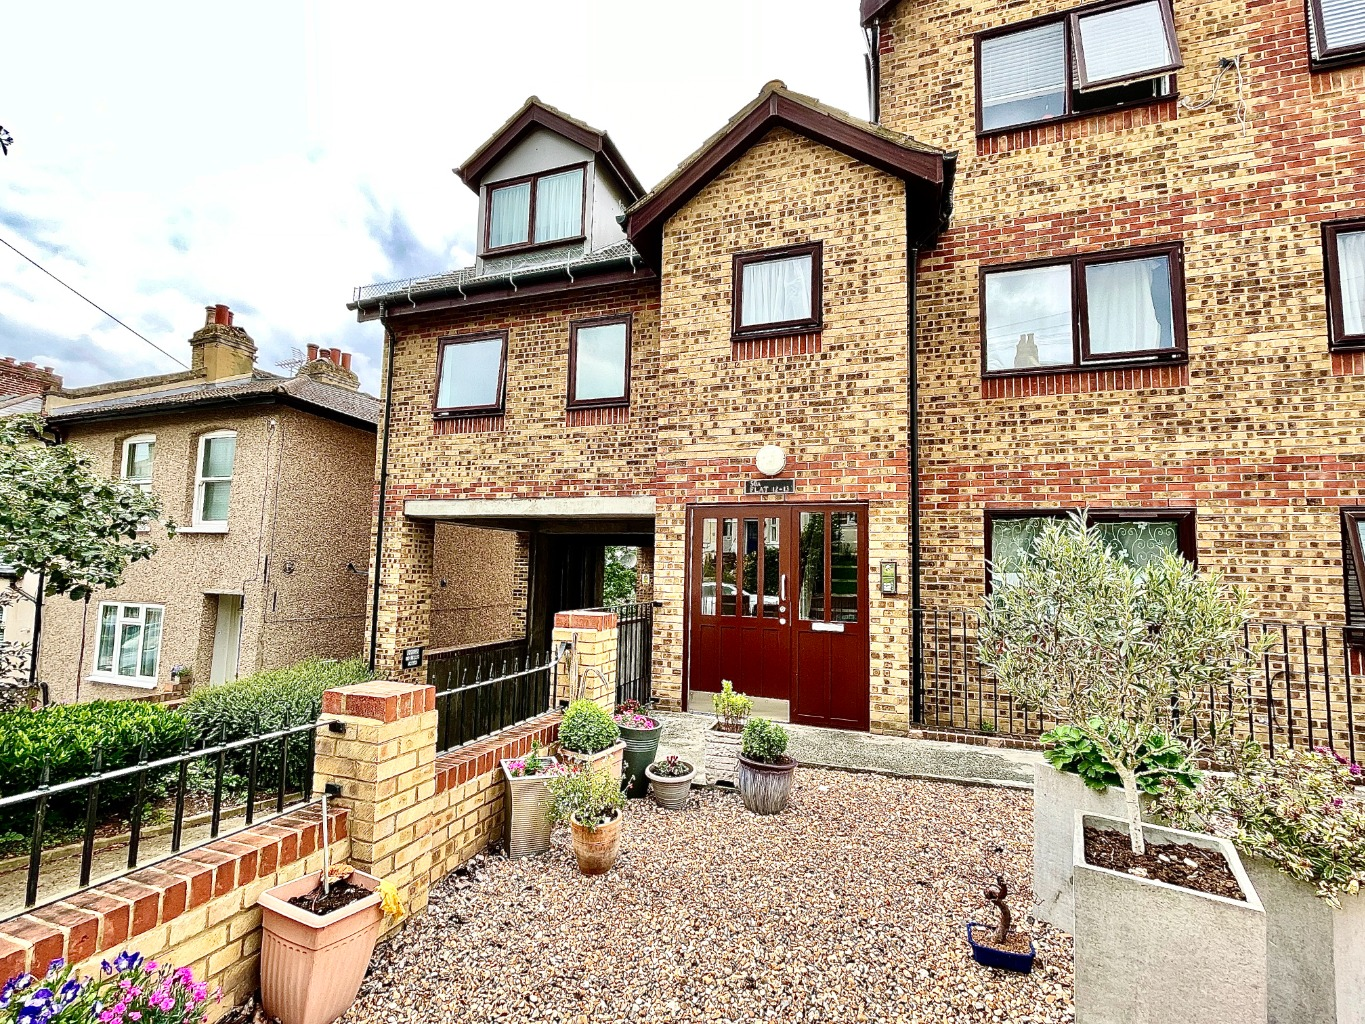 2 bed apartment for sale in Cantwell Road, London, SE18